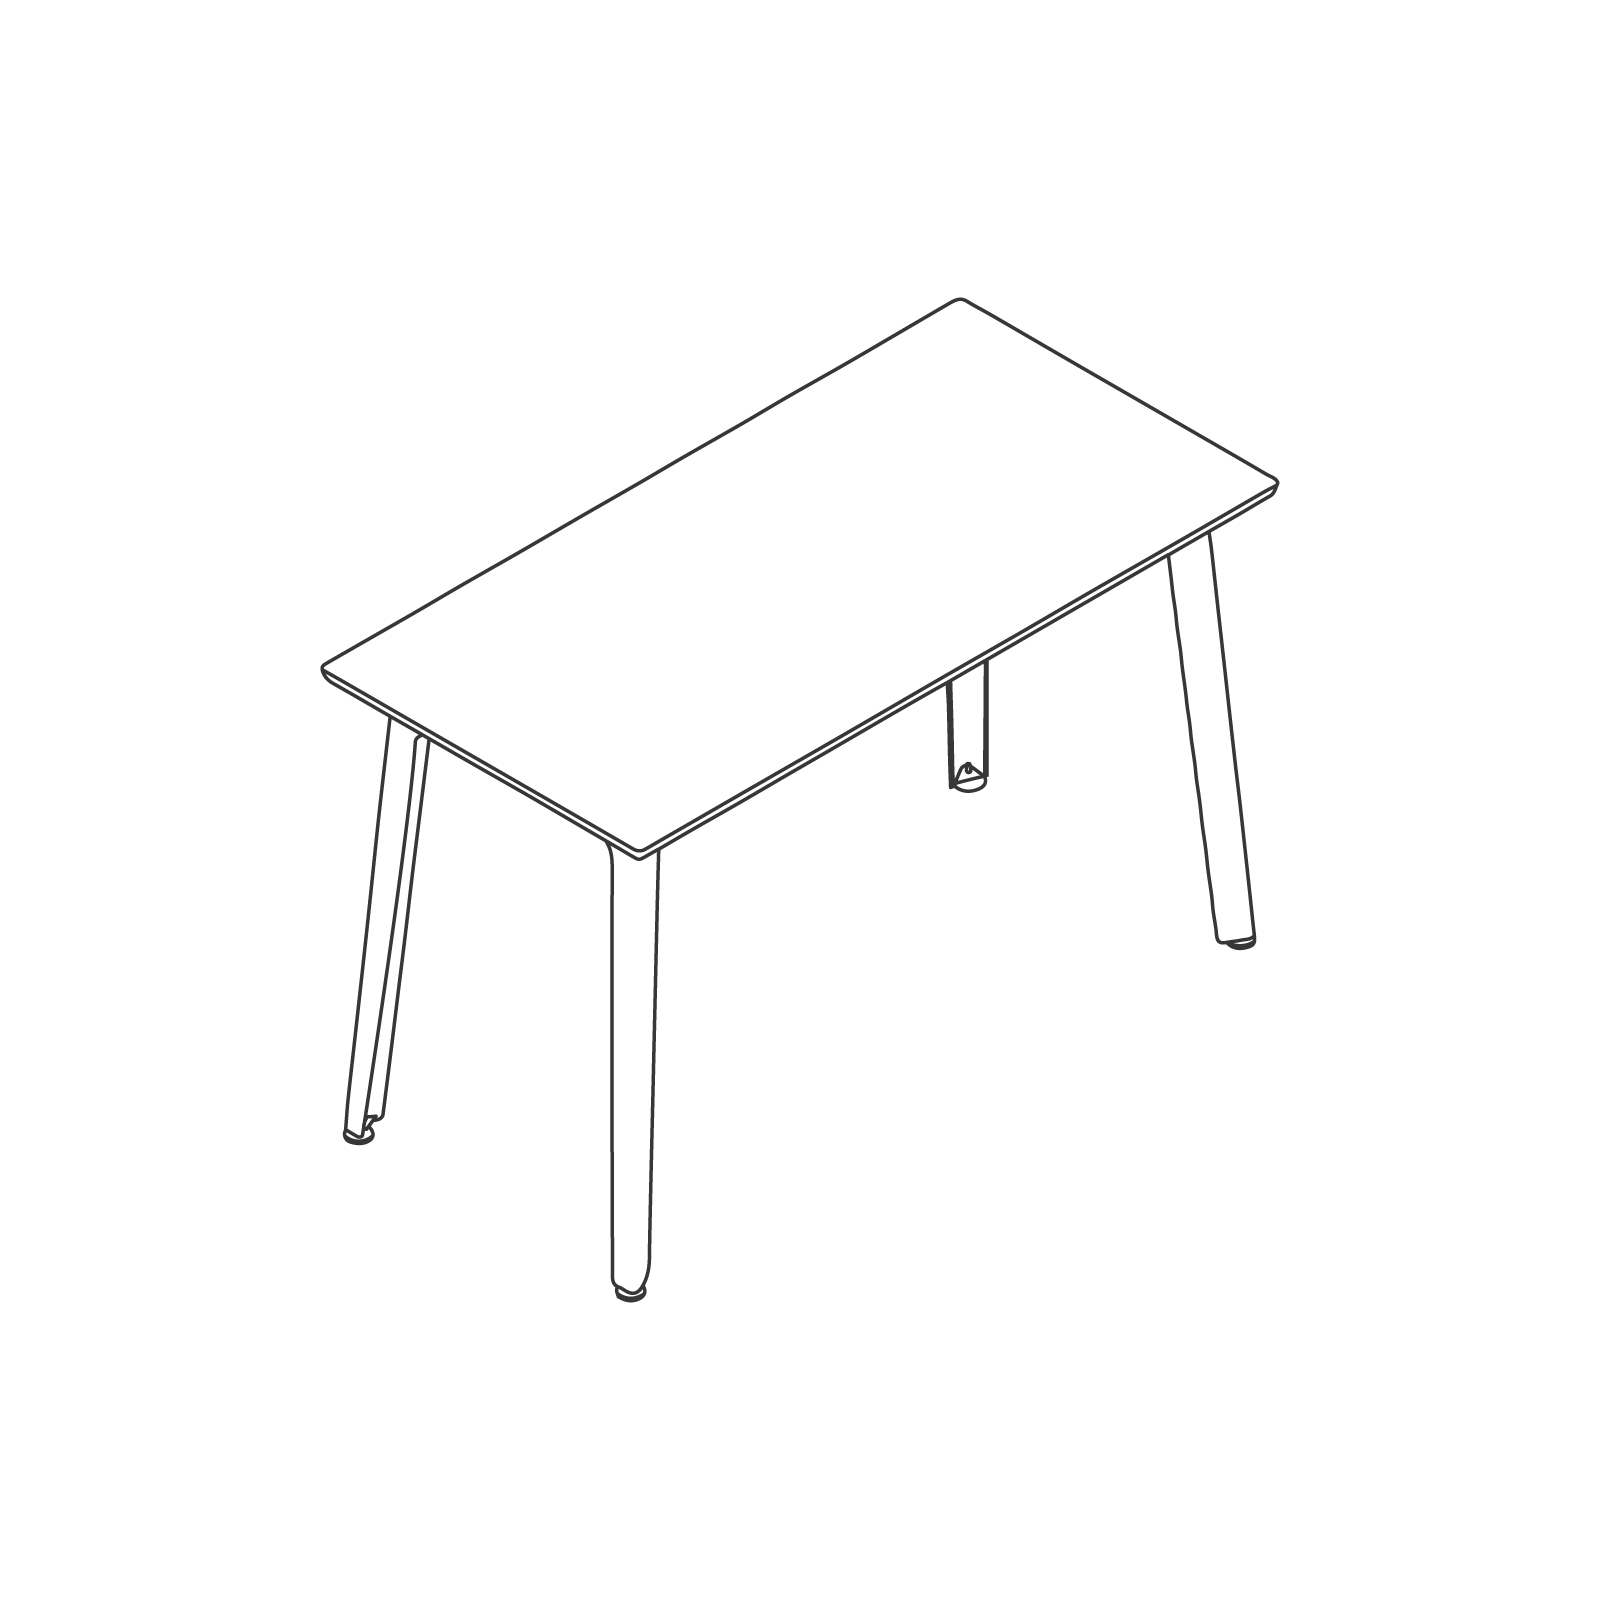 A line drawing of Fold Bar Height Table.